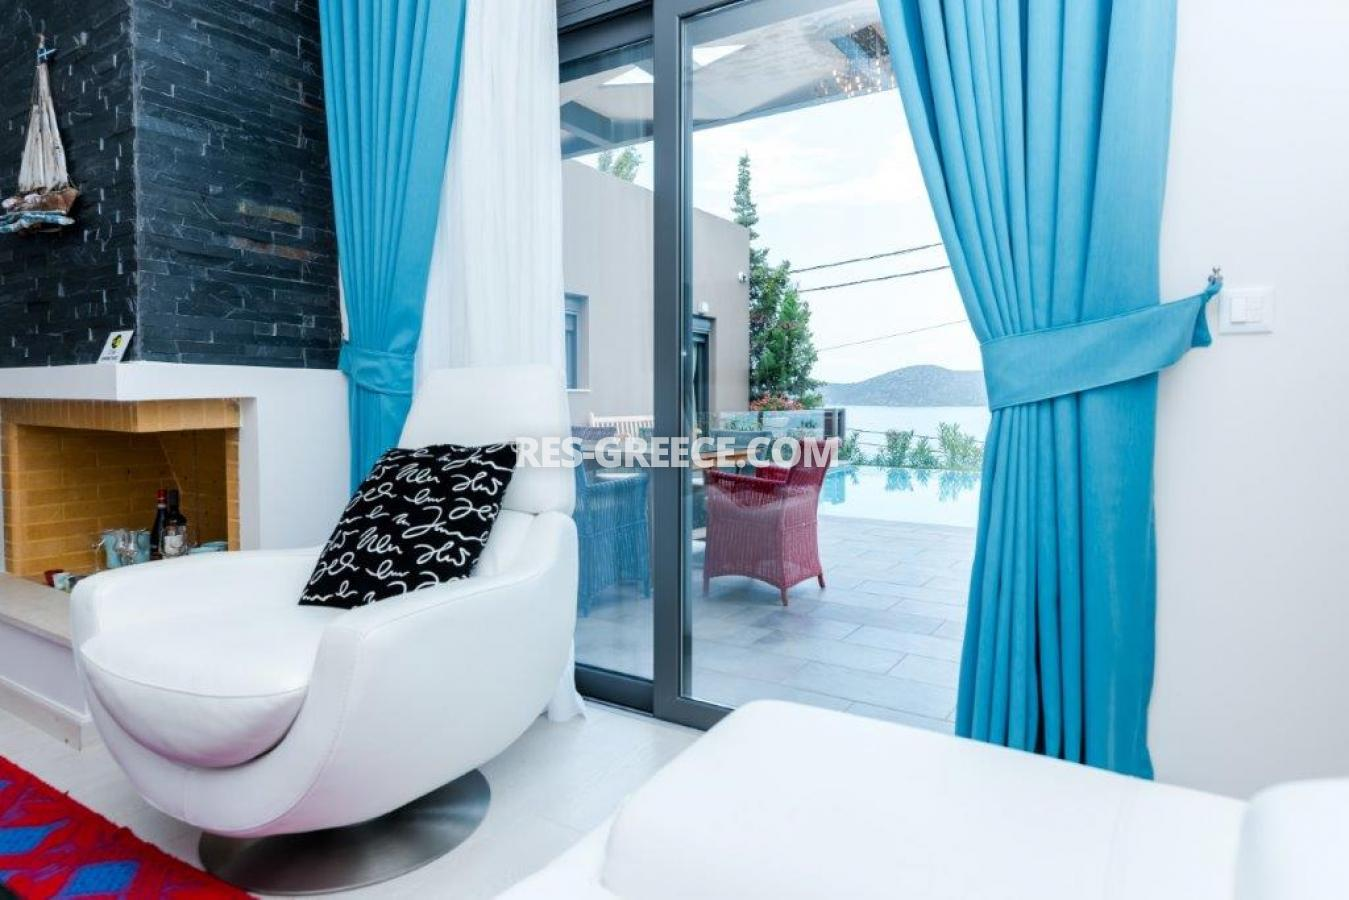 Aura Blue, Crete, Greece - villa with pool for sale in the best spot in Crete, in Elounda - Photo 7